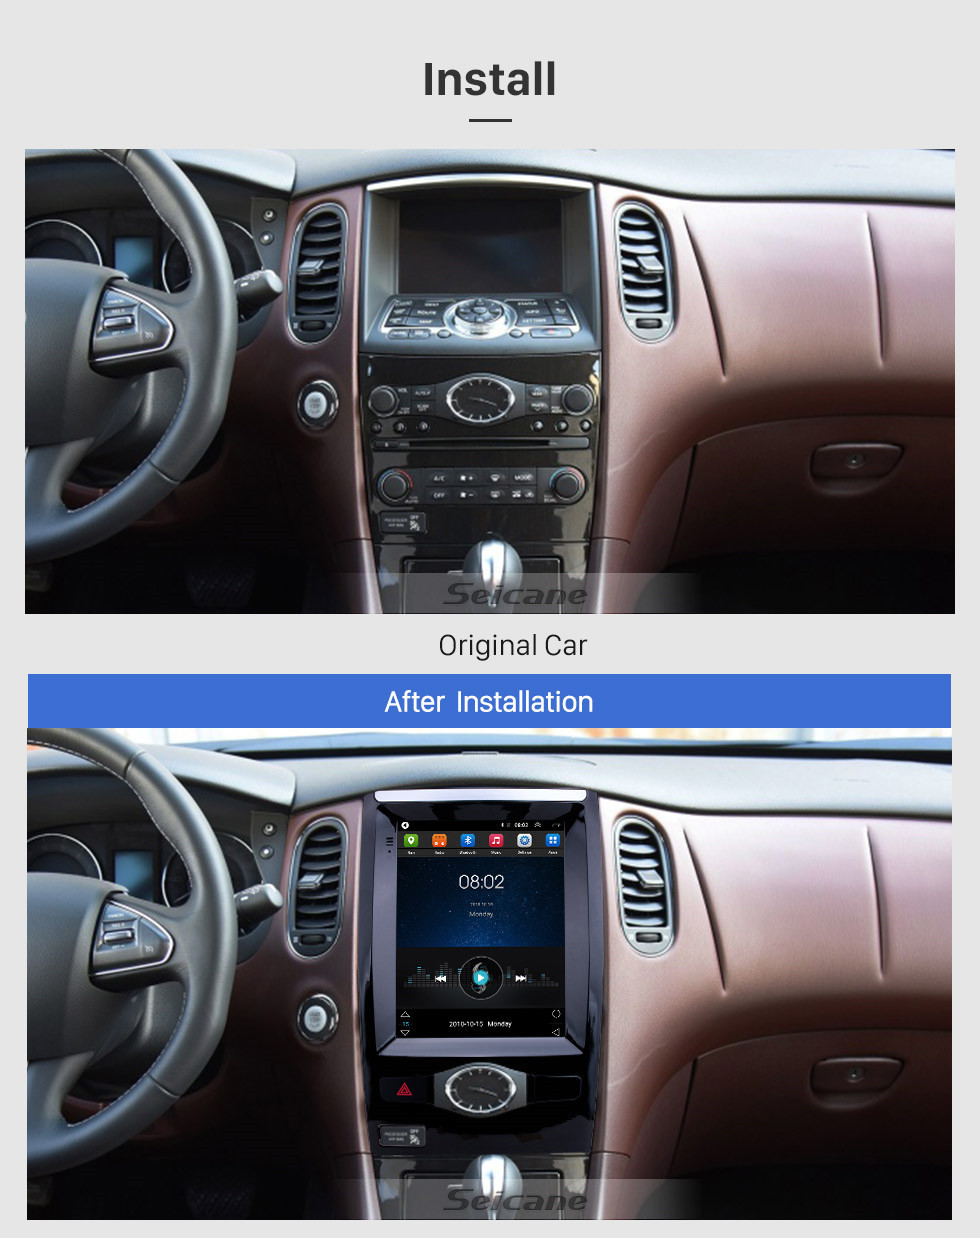 Seicane 2013-2017 Nissan Infiniti QX50 9.7 inch Android 9.1 GPS Navigation Radio with HD Touchscreen Bluetooth WIFI support Carplay Rear camera